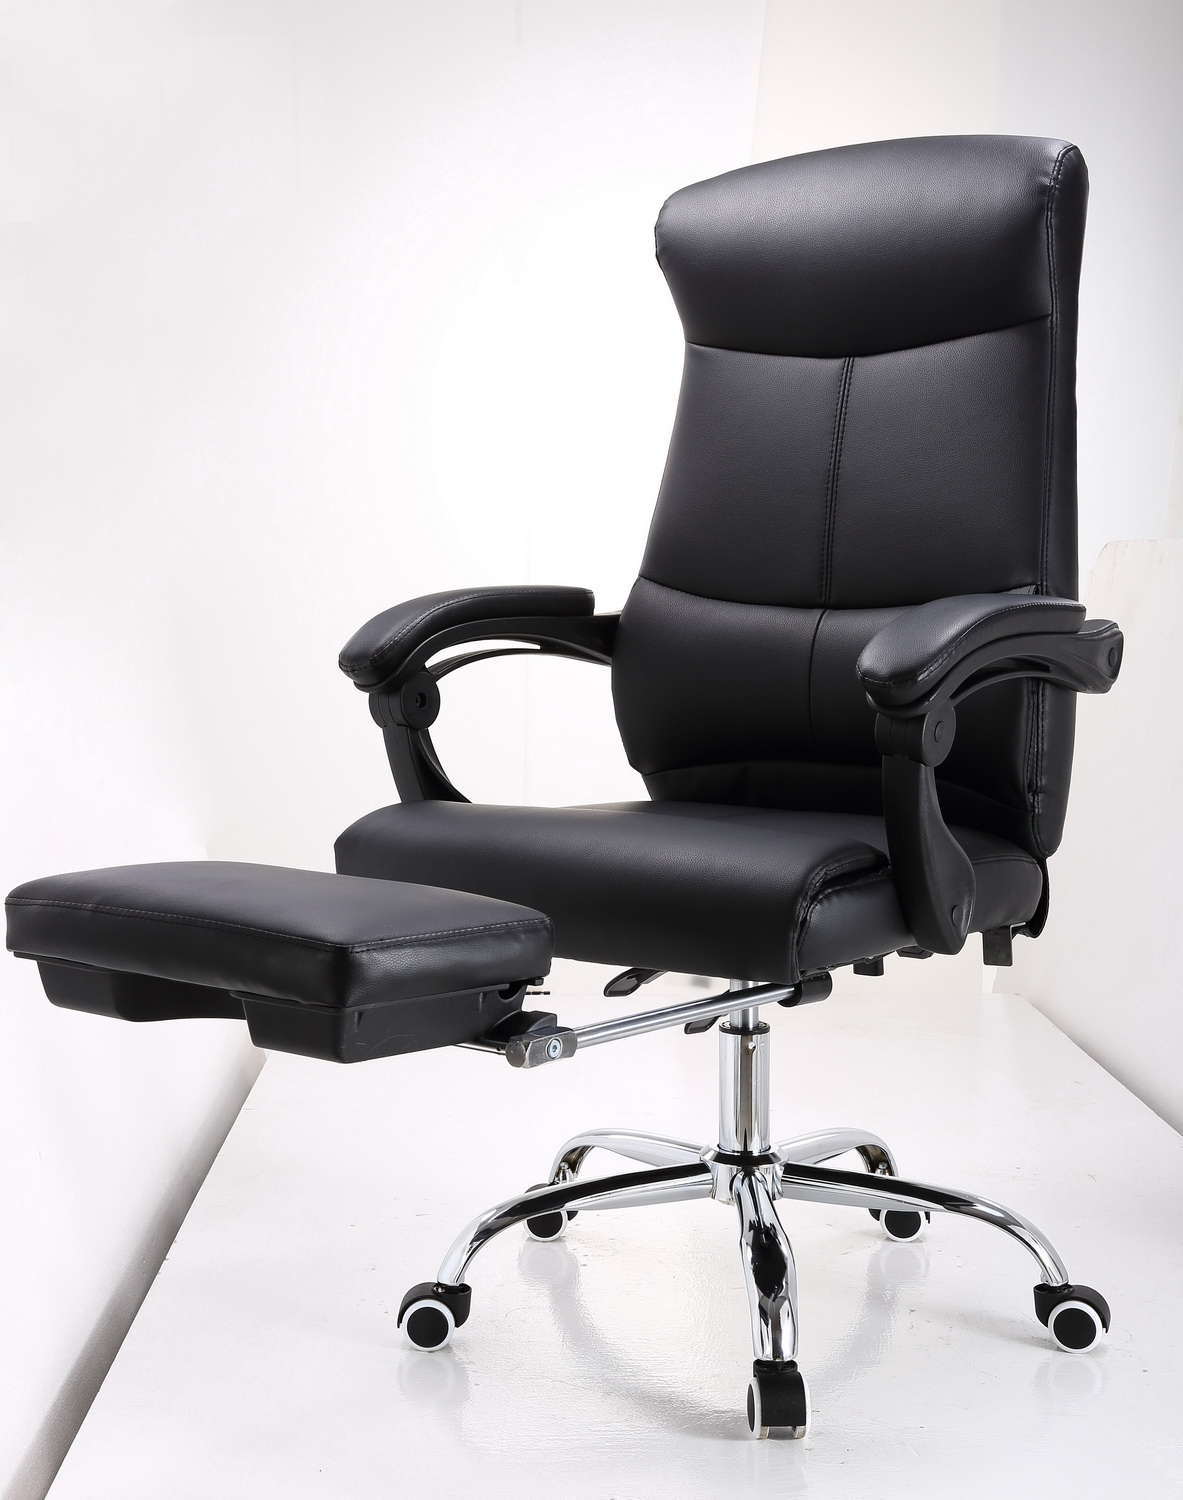 Office Chair Deals Buy Ergonomic Chair Office Chair Executive Chair Mesh